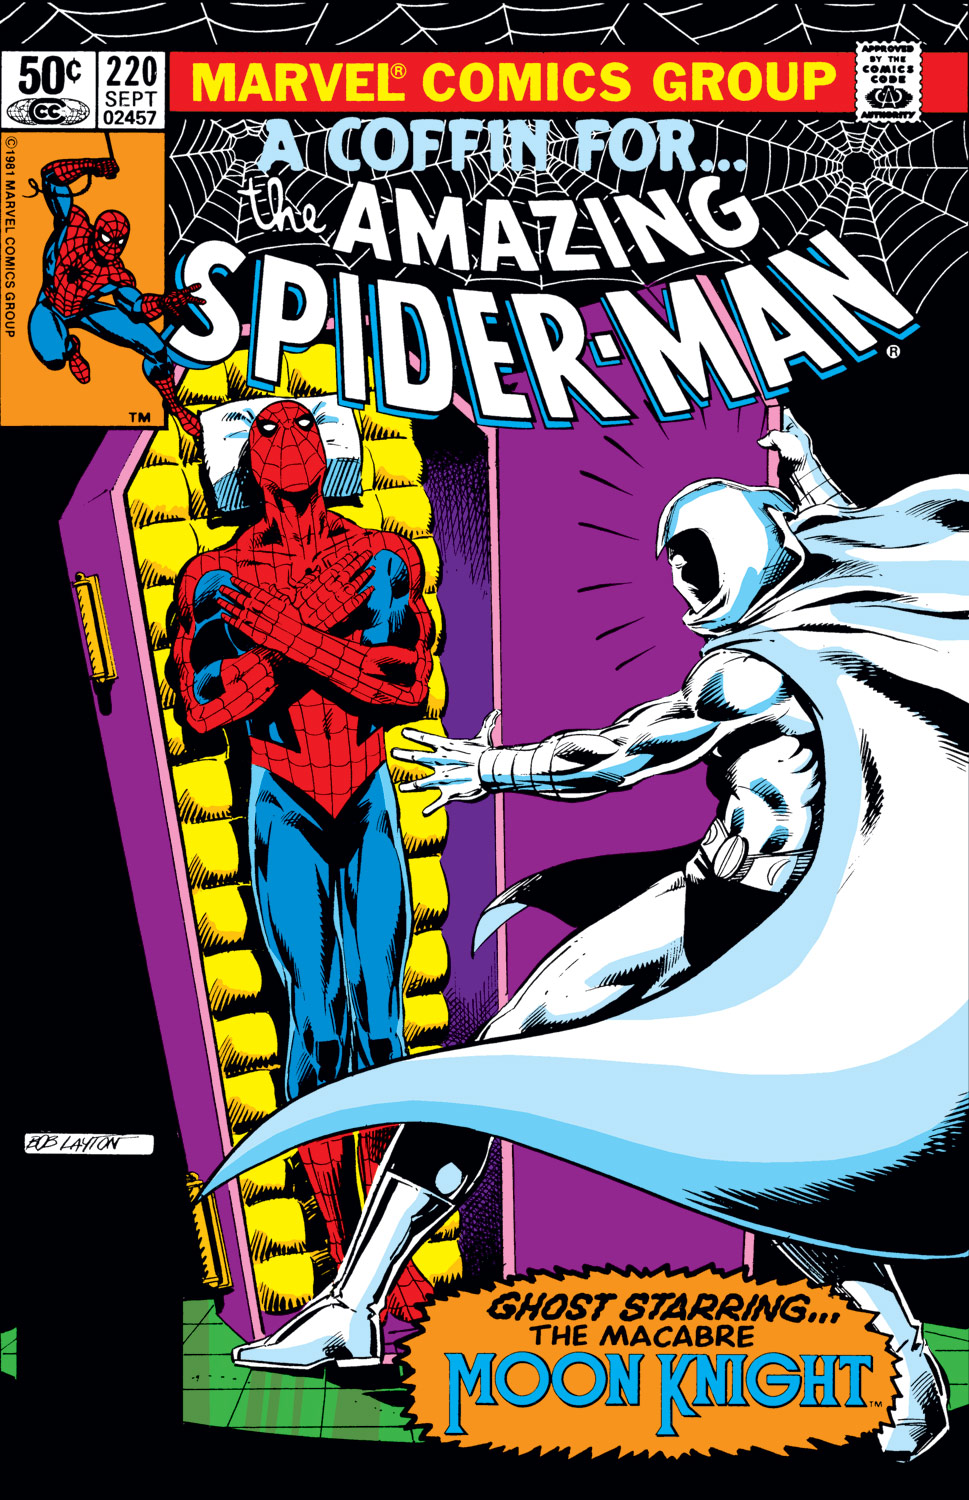 The Amazing Spider-Man (1963) #220